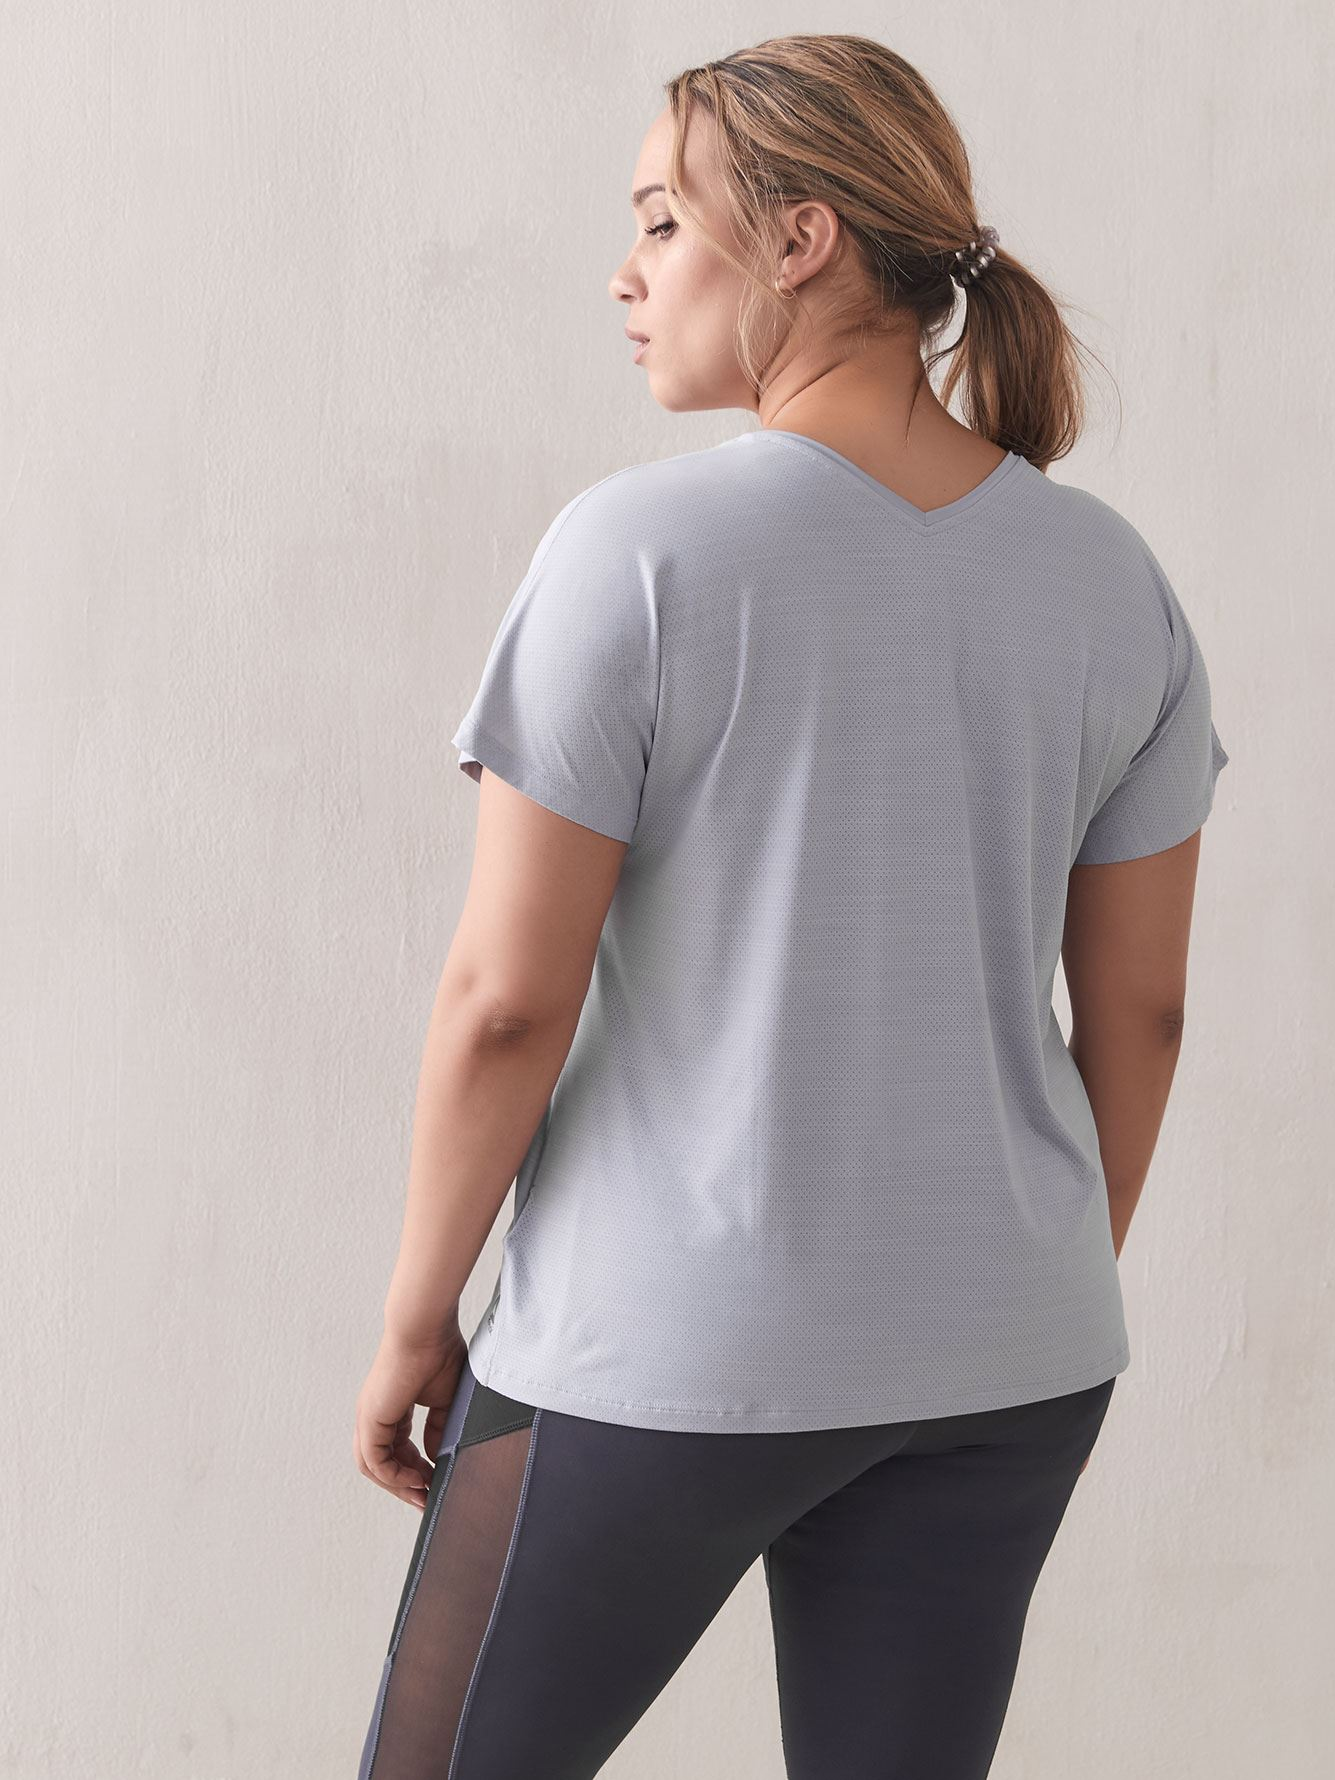 Activchill One Series T-Shirt - Reebok